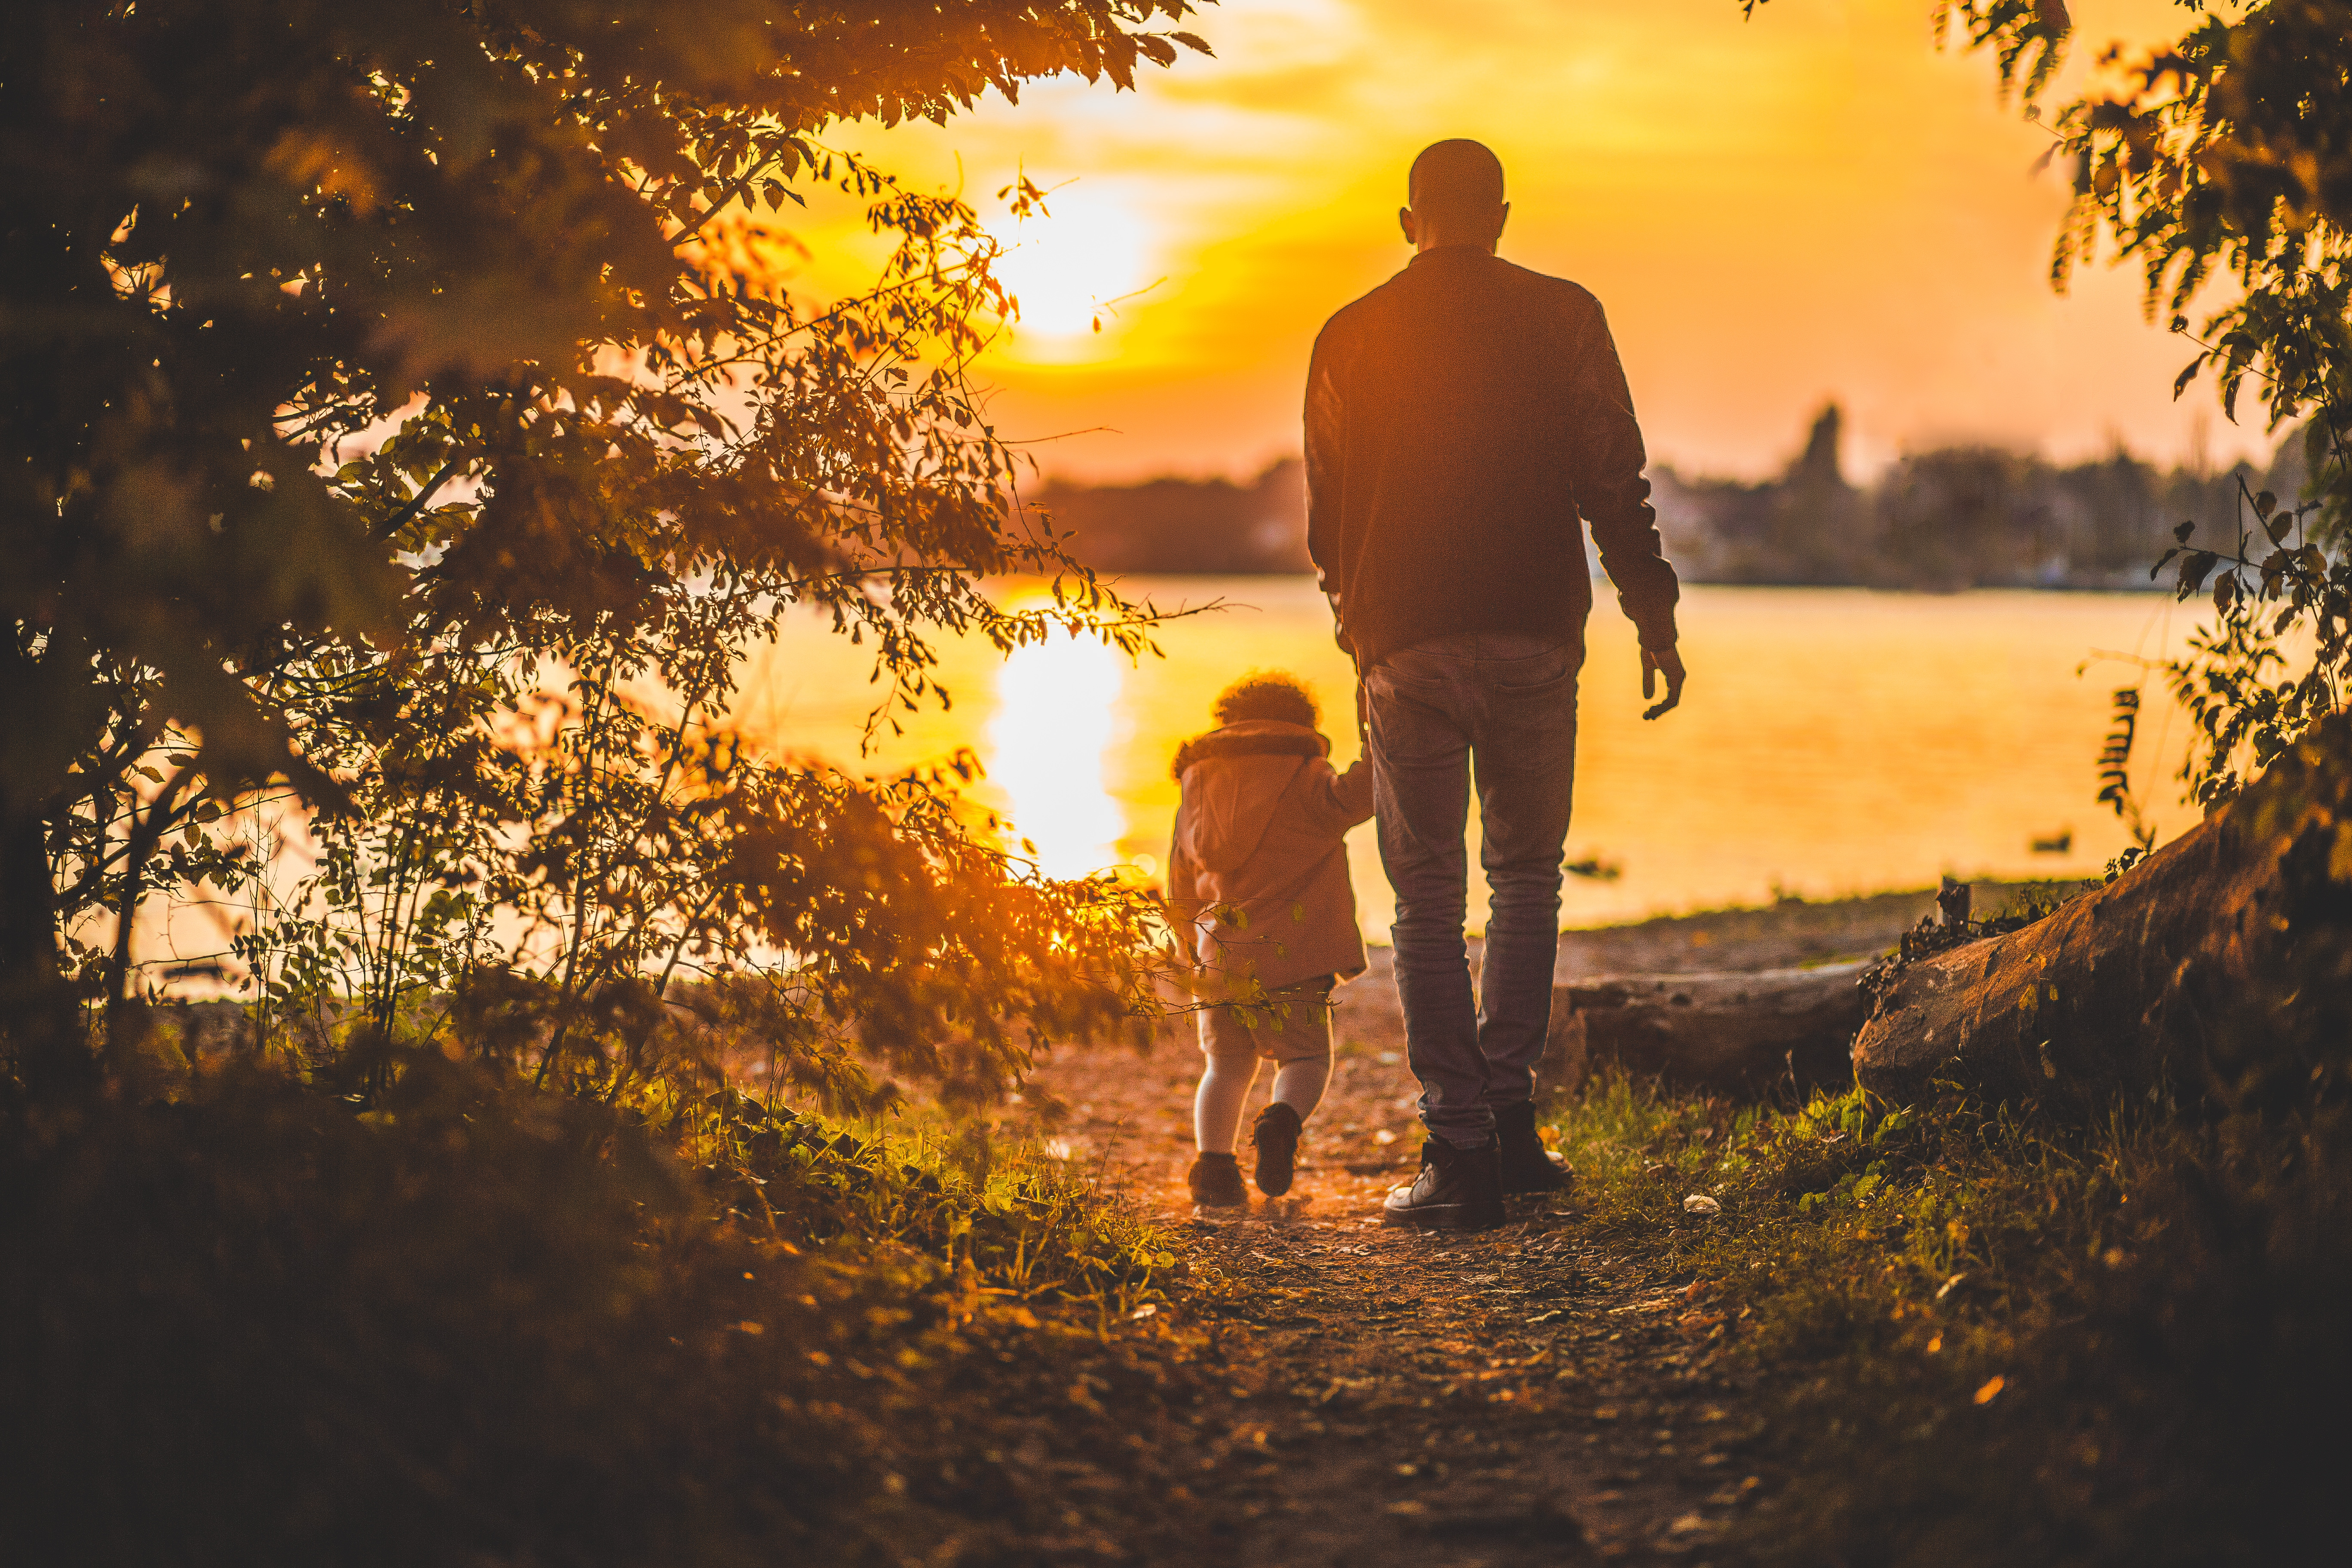 154046 download wallpaper Miscellanea, Miscellaneous, Father, Daughter, Family, Sunset, Stroll screensavers and pictures for free